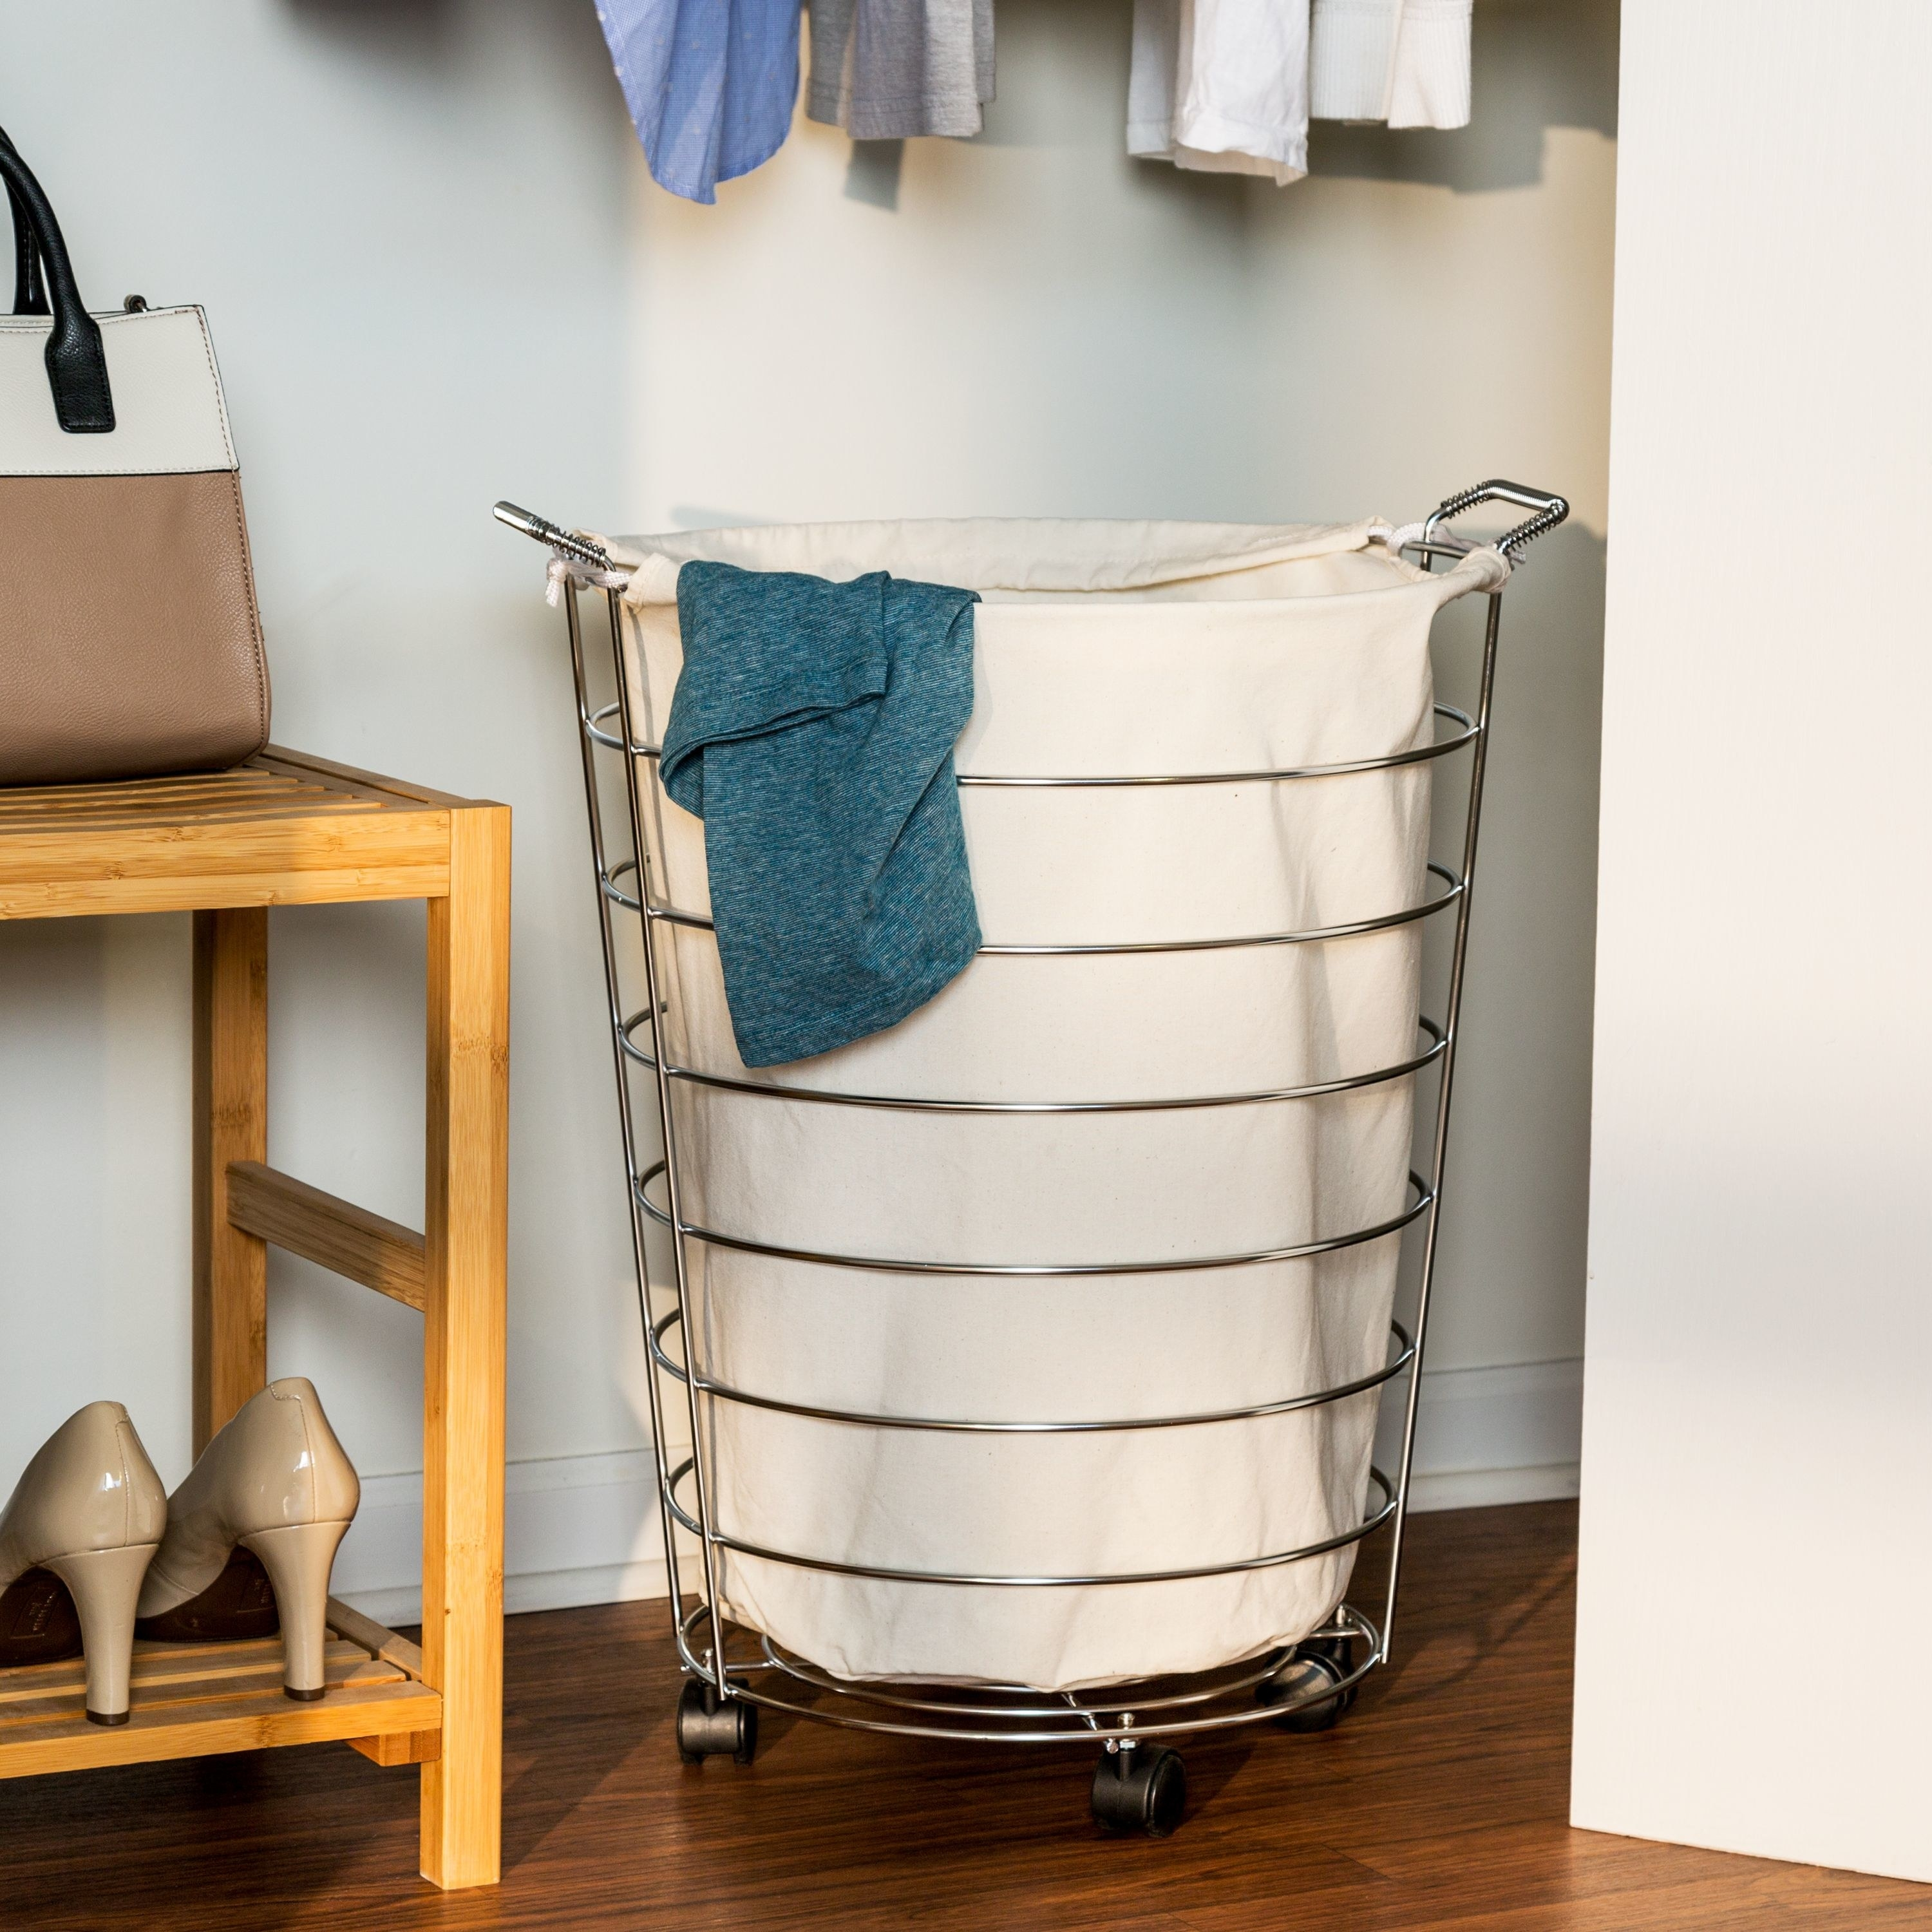 rolling laundry basket in closet